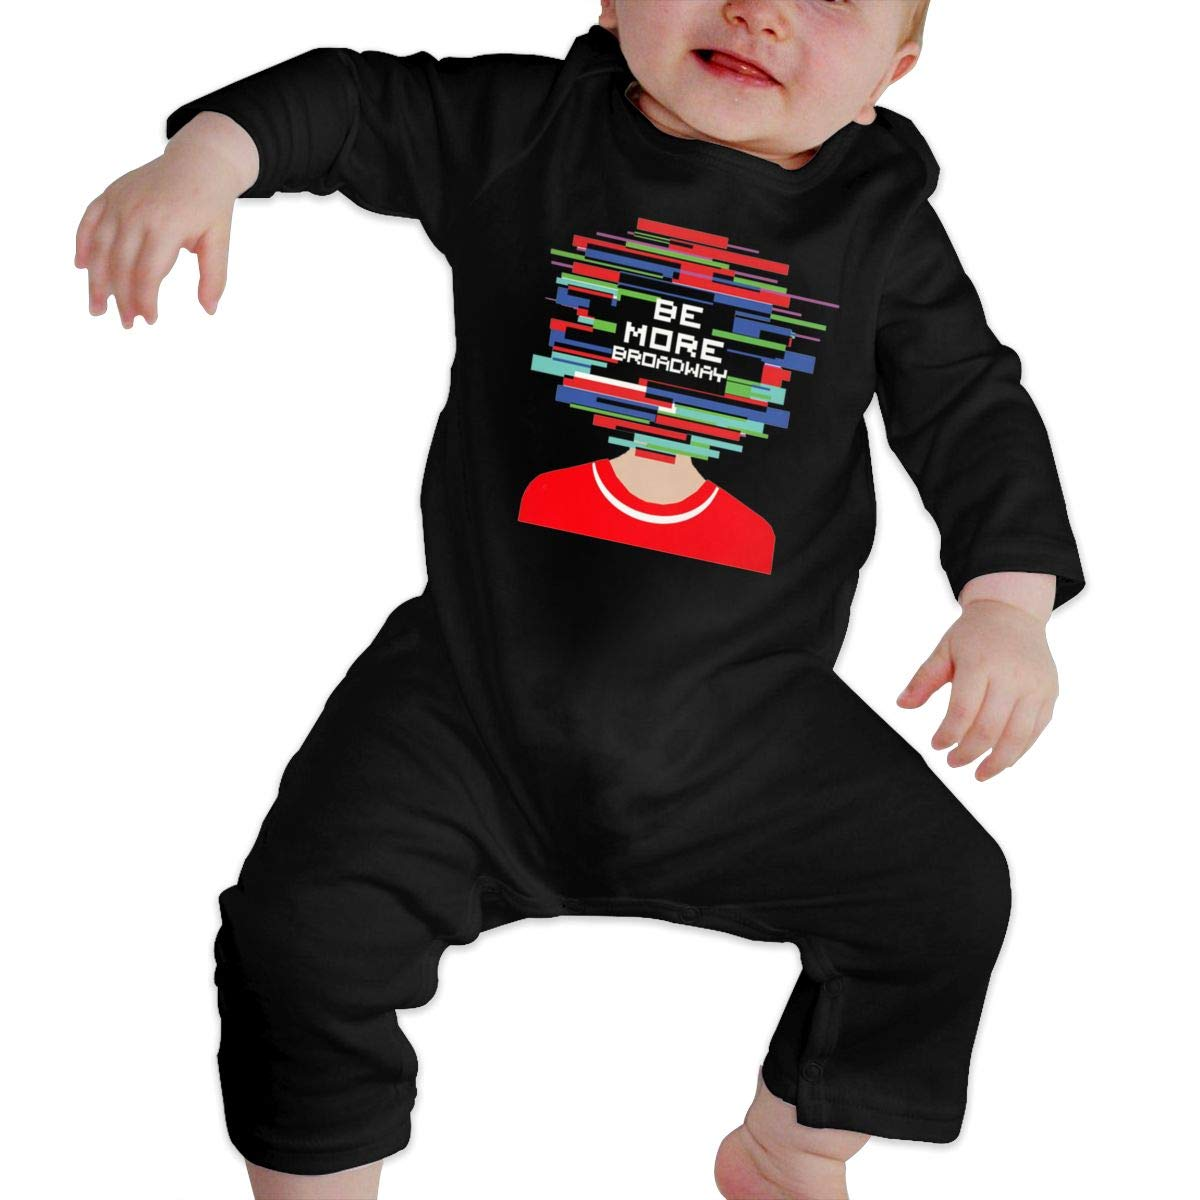 Be More Chill be More Broadway Printed Baby Girl Unisex Cotton Long Sleeve Jumpsuit Romper with Headband Infant Clothes